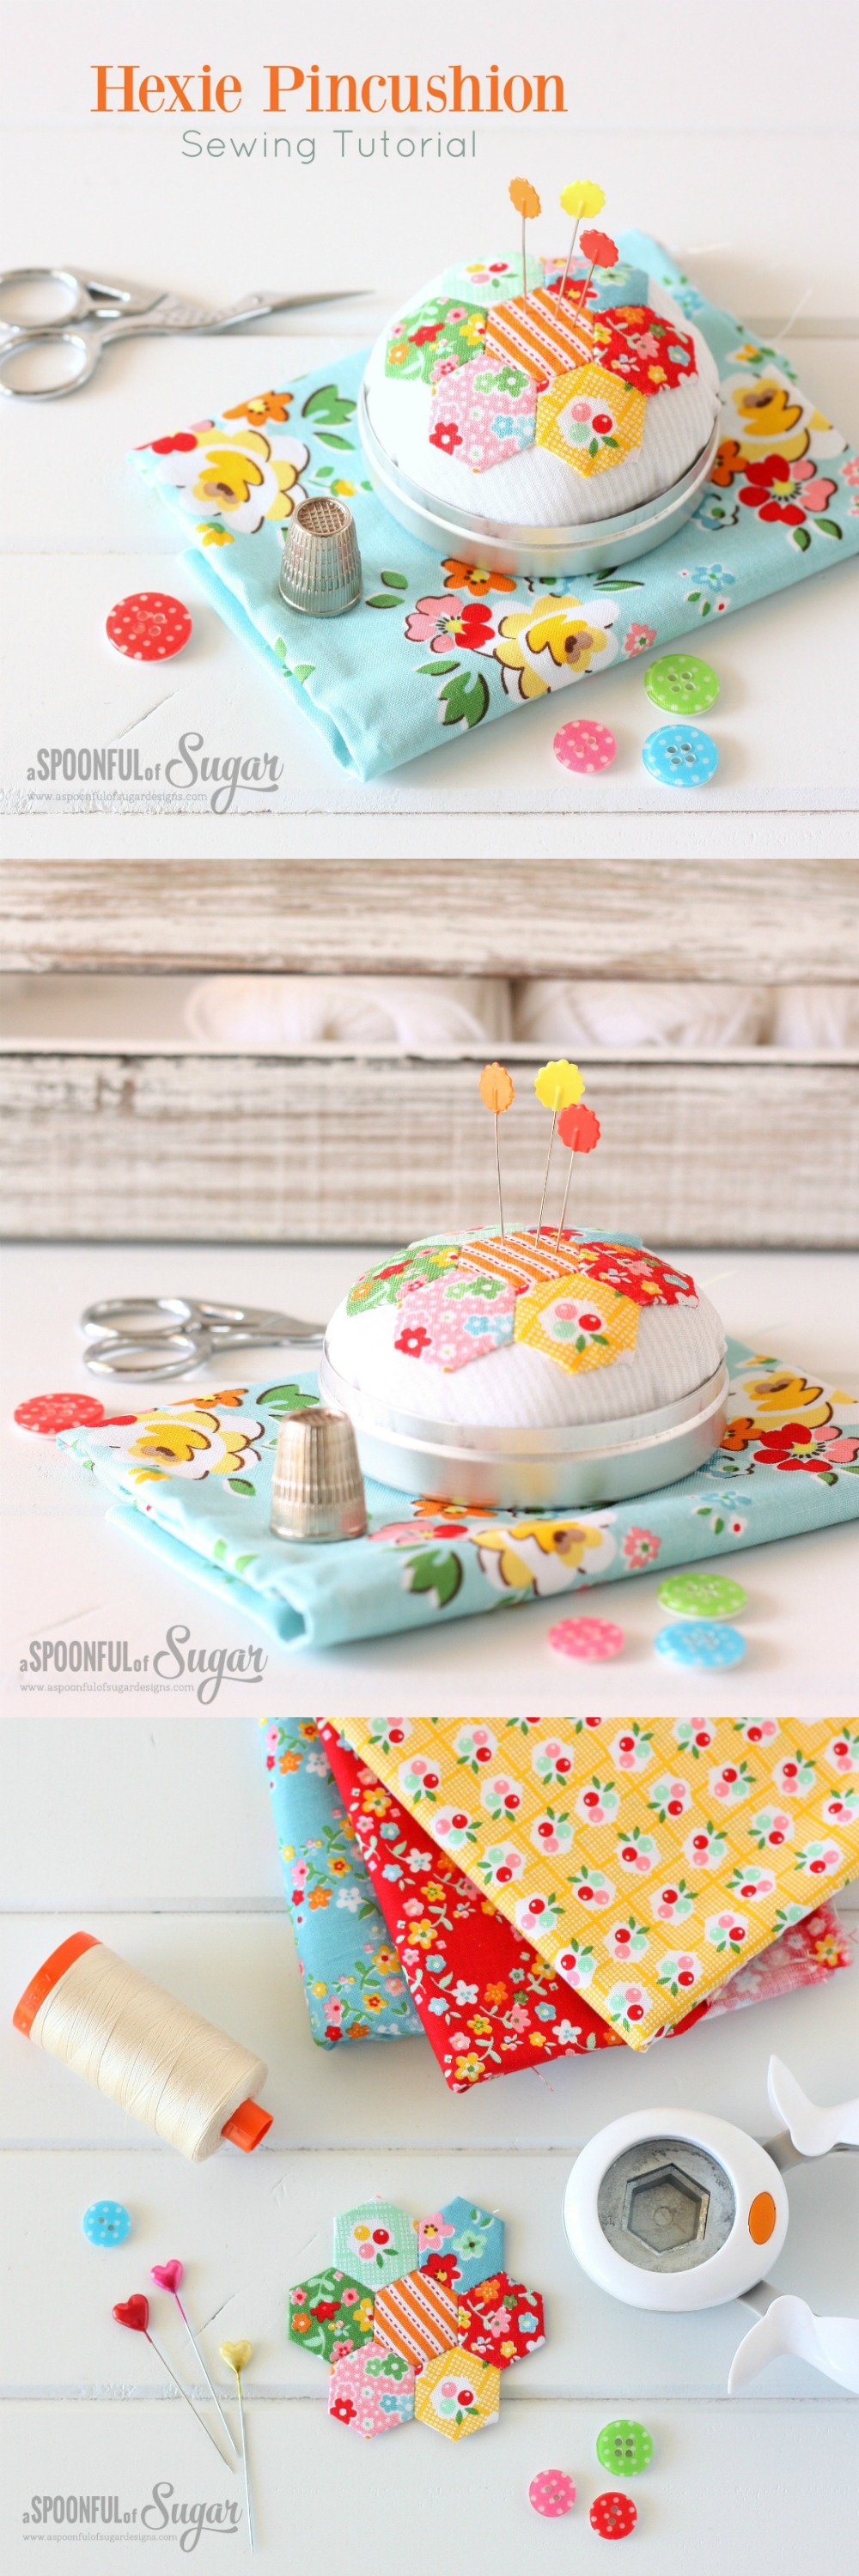 Hexie Pincushion {Free Sewing Tutorial} | A Spoonful of ...